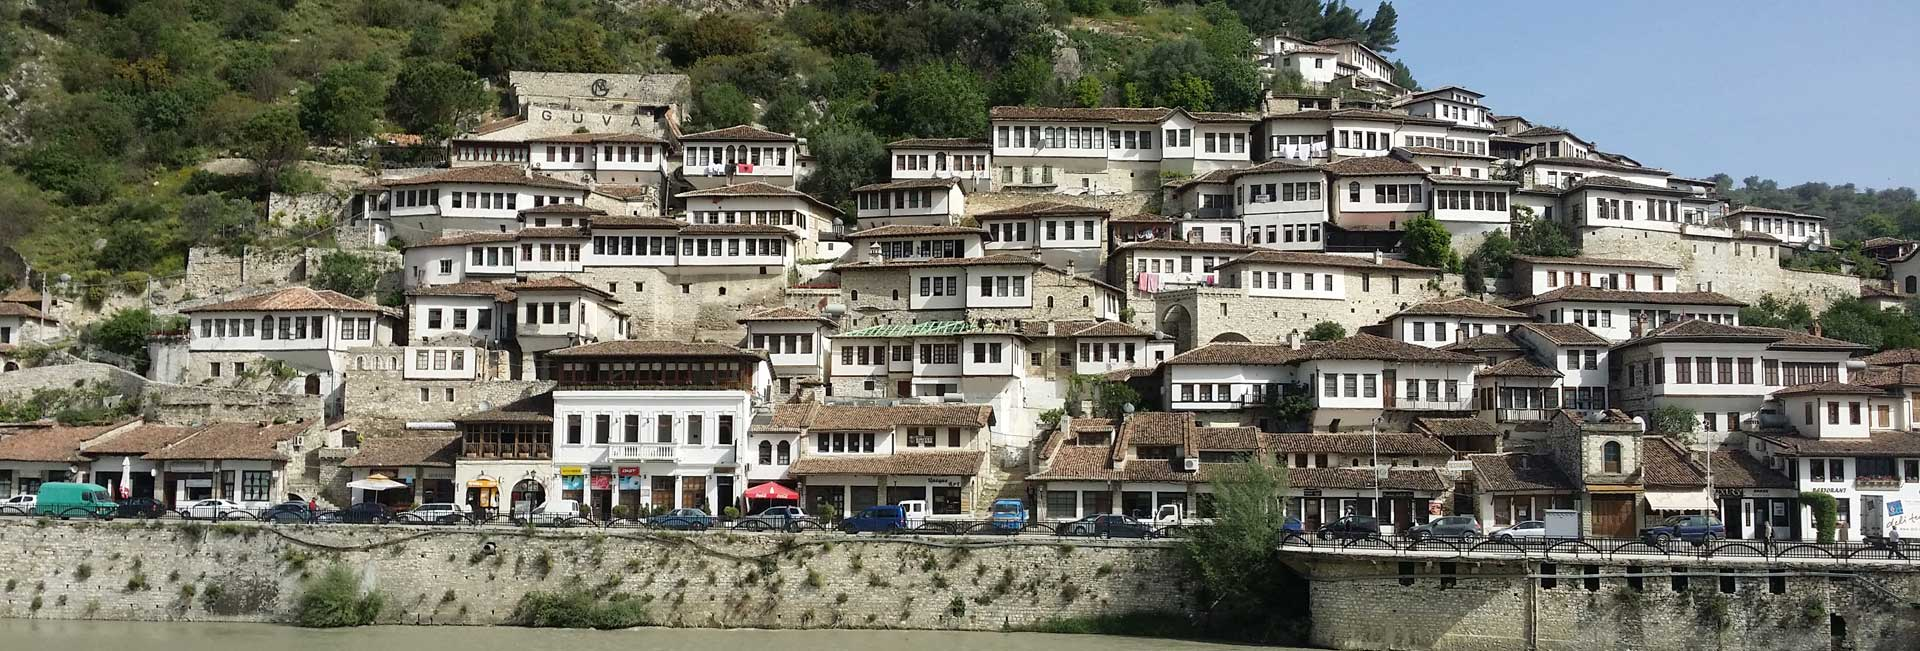 The whitewashed architecture of UNESCO-listed Berat in Albania. Photo credit: Mike Belton & Karen McGrath